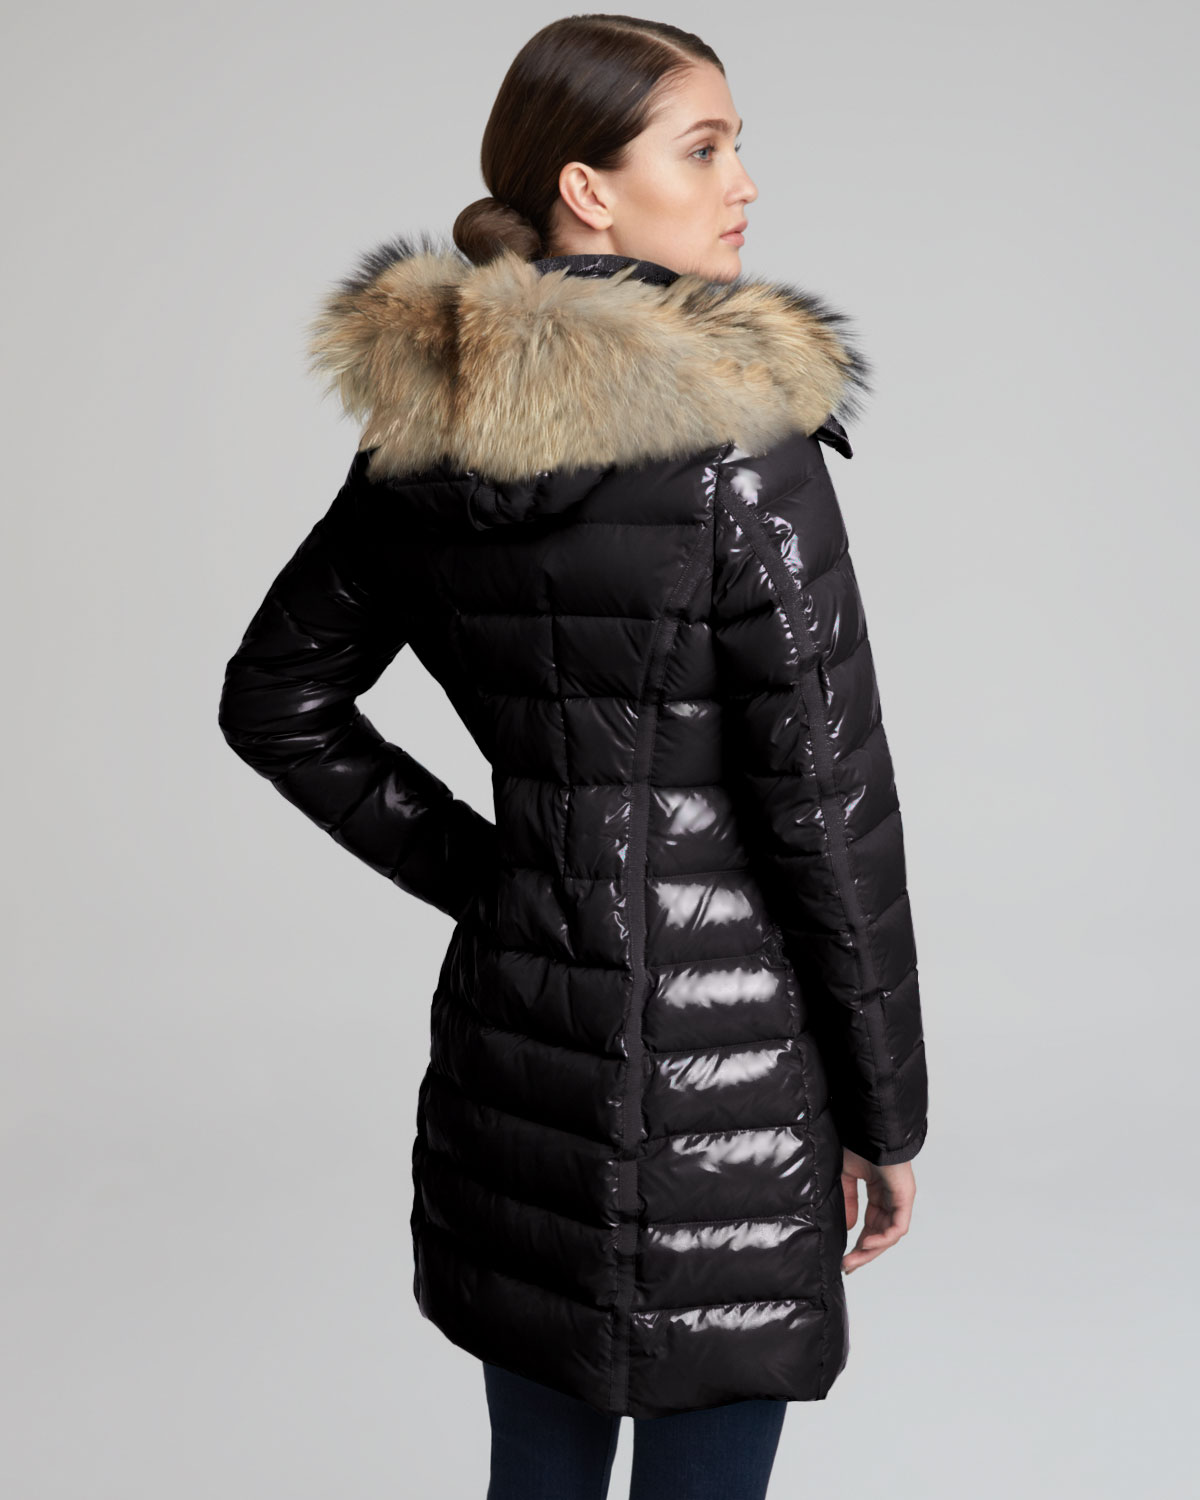 Lyst - Moncler Fur Hooded Long Puffer Coat In Black-7078